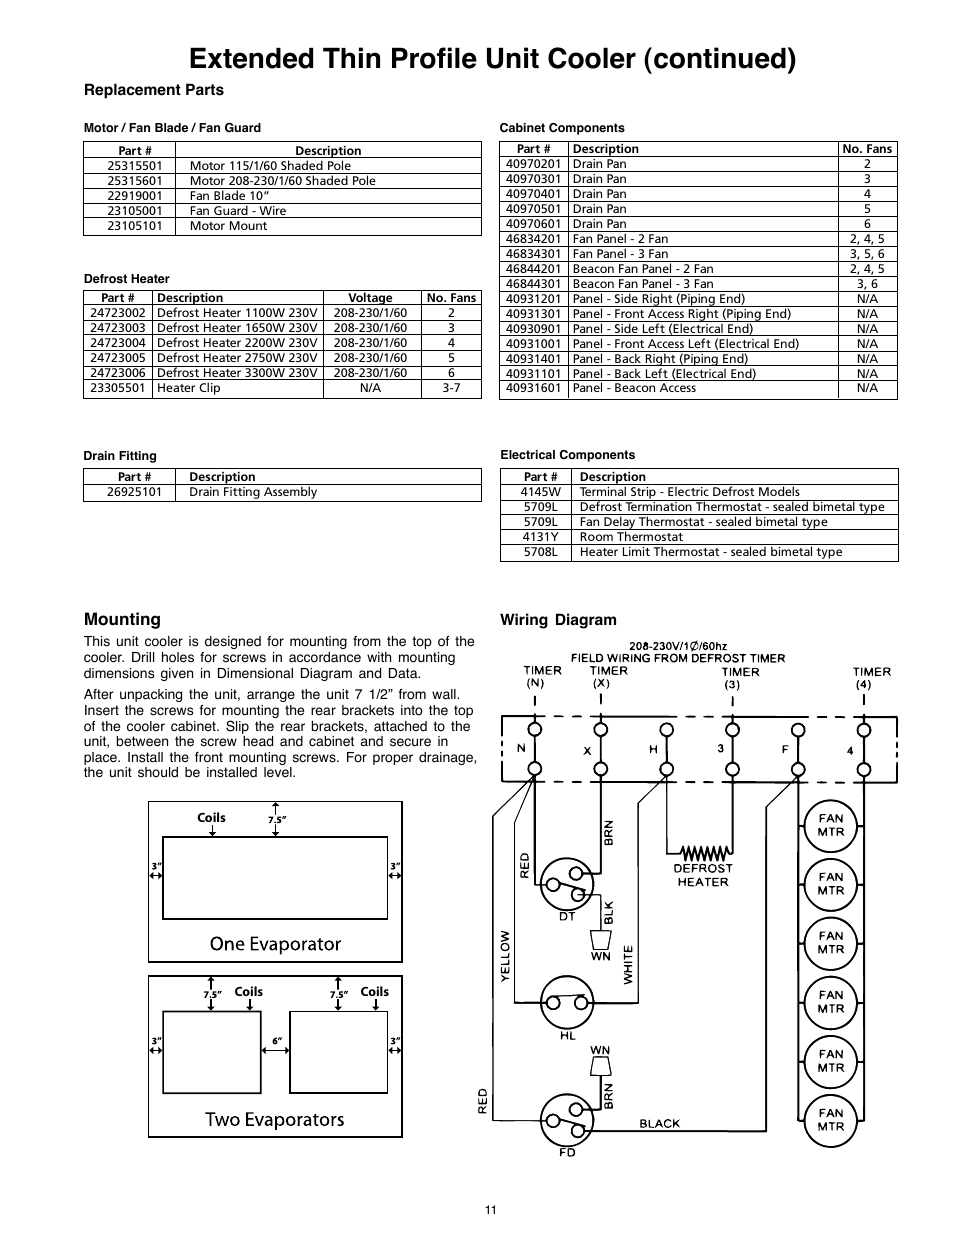 commercial walk in freezer wiring diagram extended thin profile unit cooler (continued), mounting ...